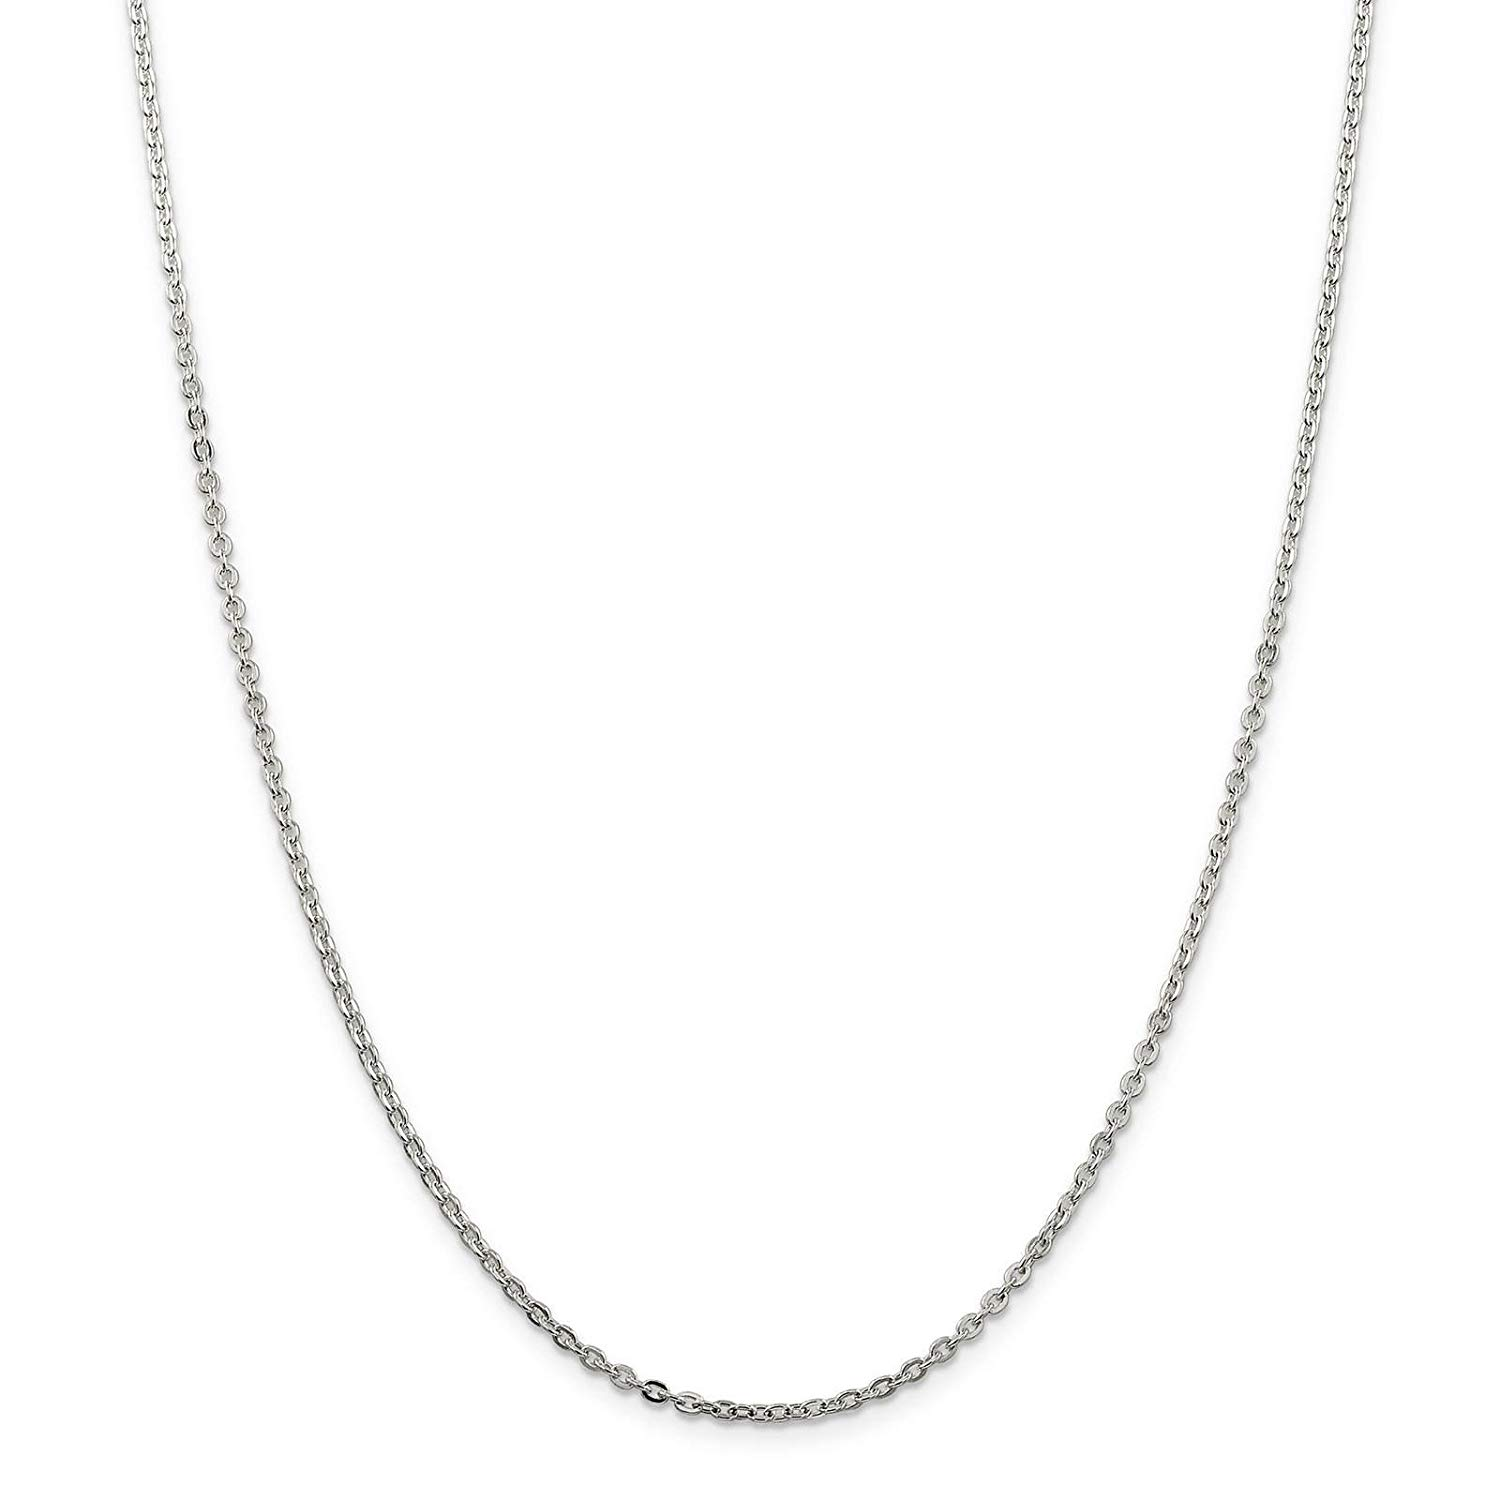 56a3a03db5c Get Quotations · 925 Sterling Silver 2mm Flat Cable Link Chain Necklace 16